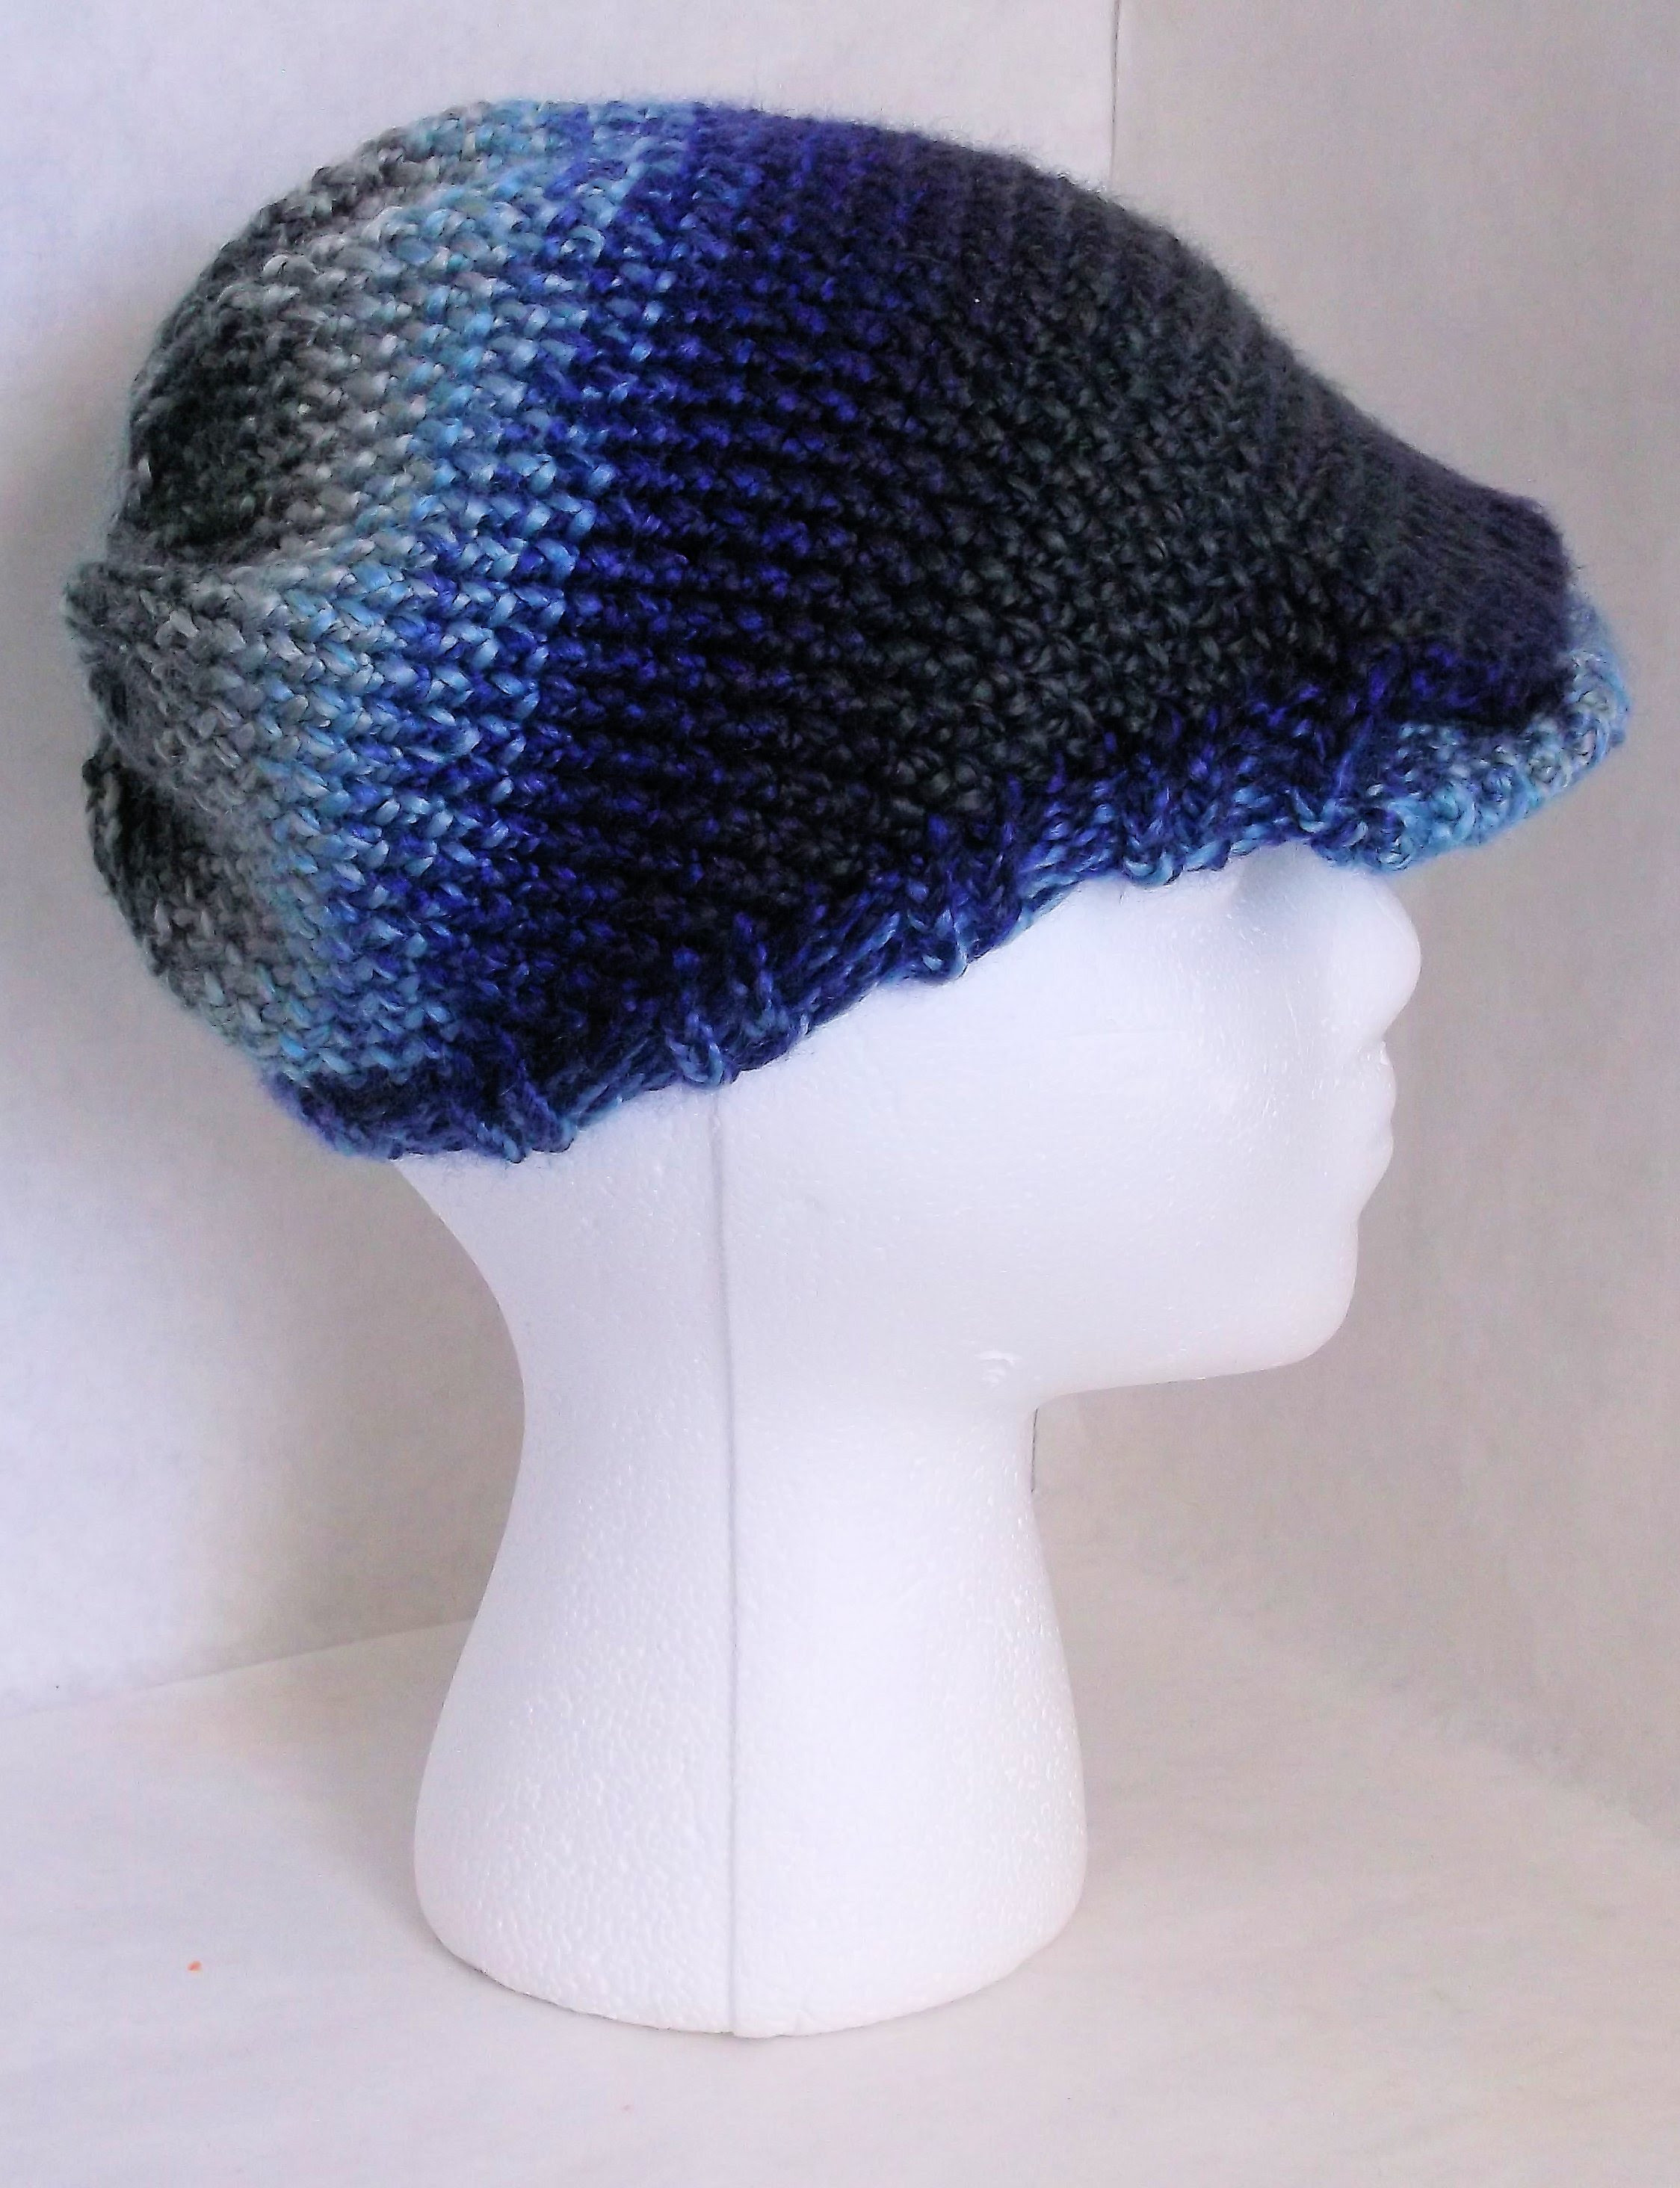 Hat Loom New How to Loom Knit Newsboy Hat Of Amazing 48 Pictures Hat Loom